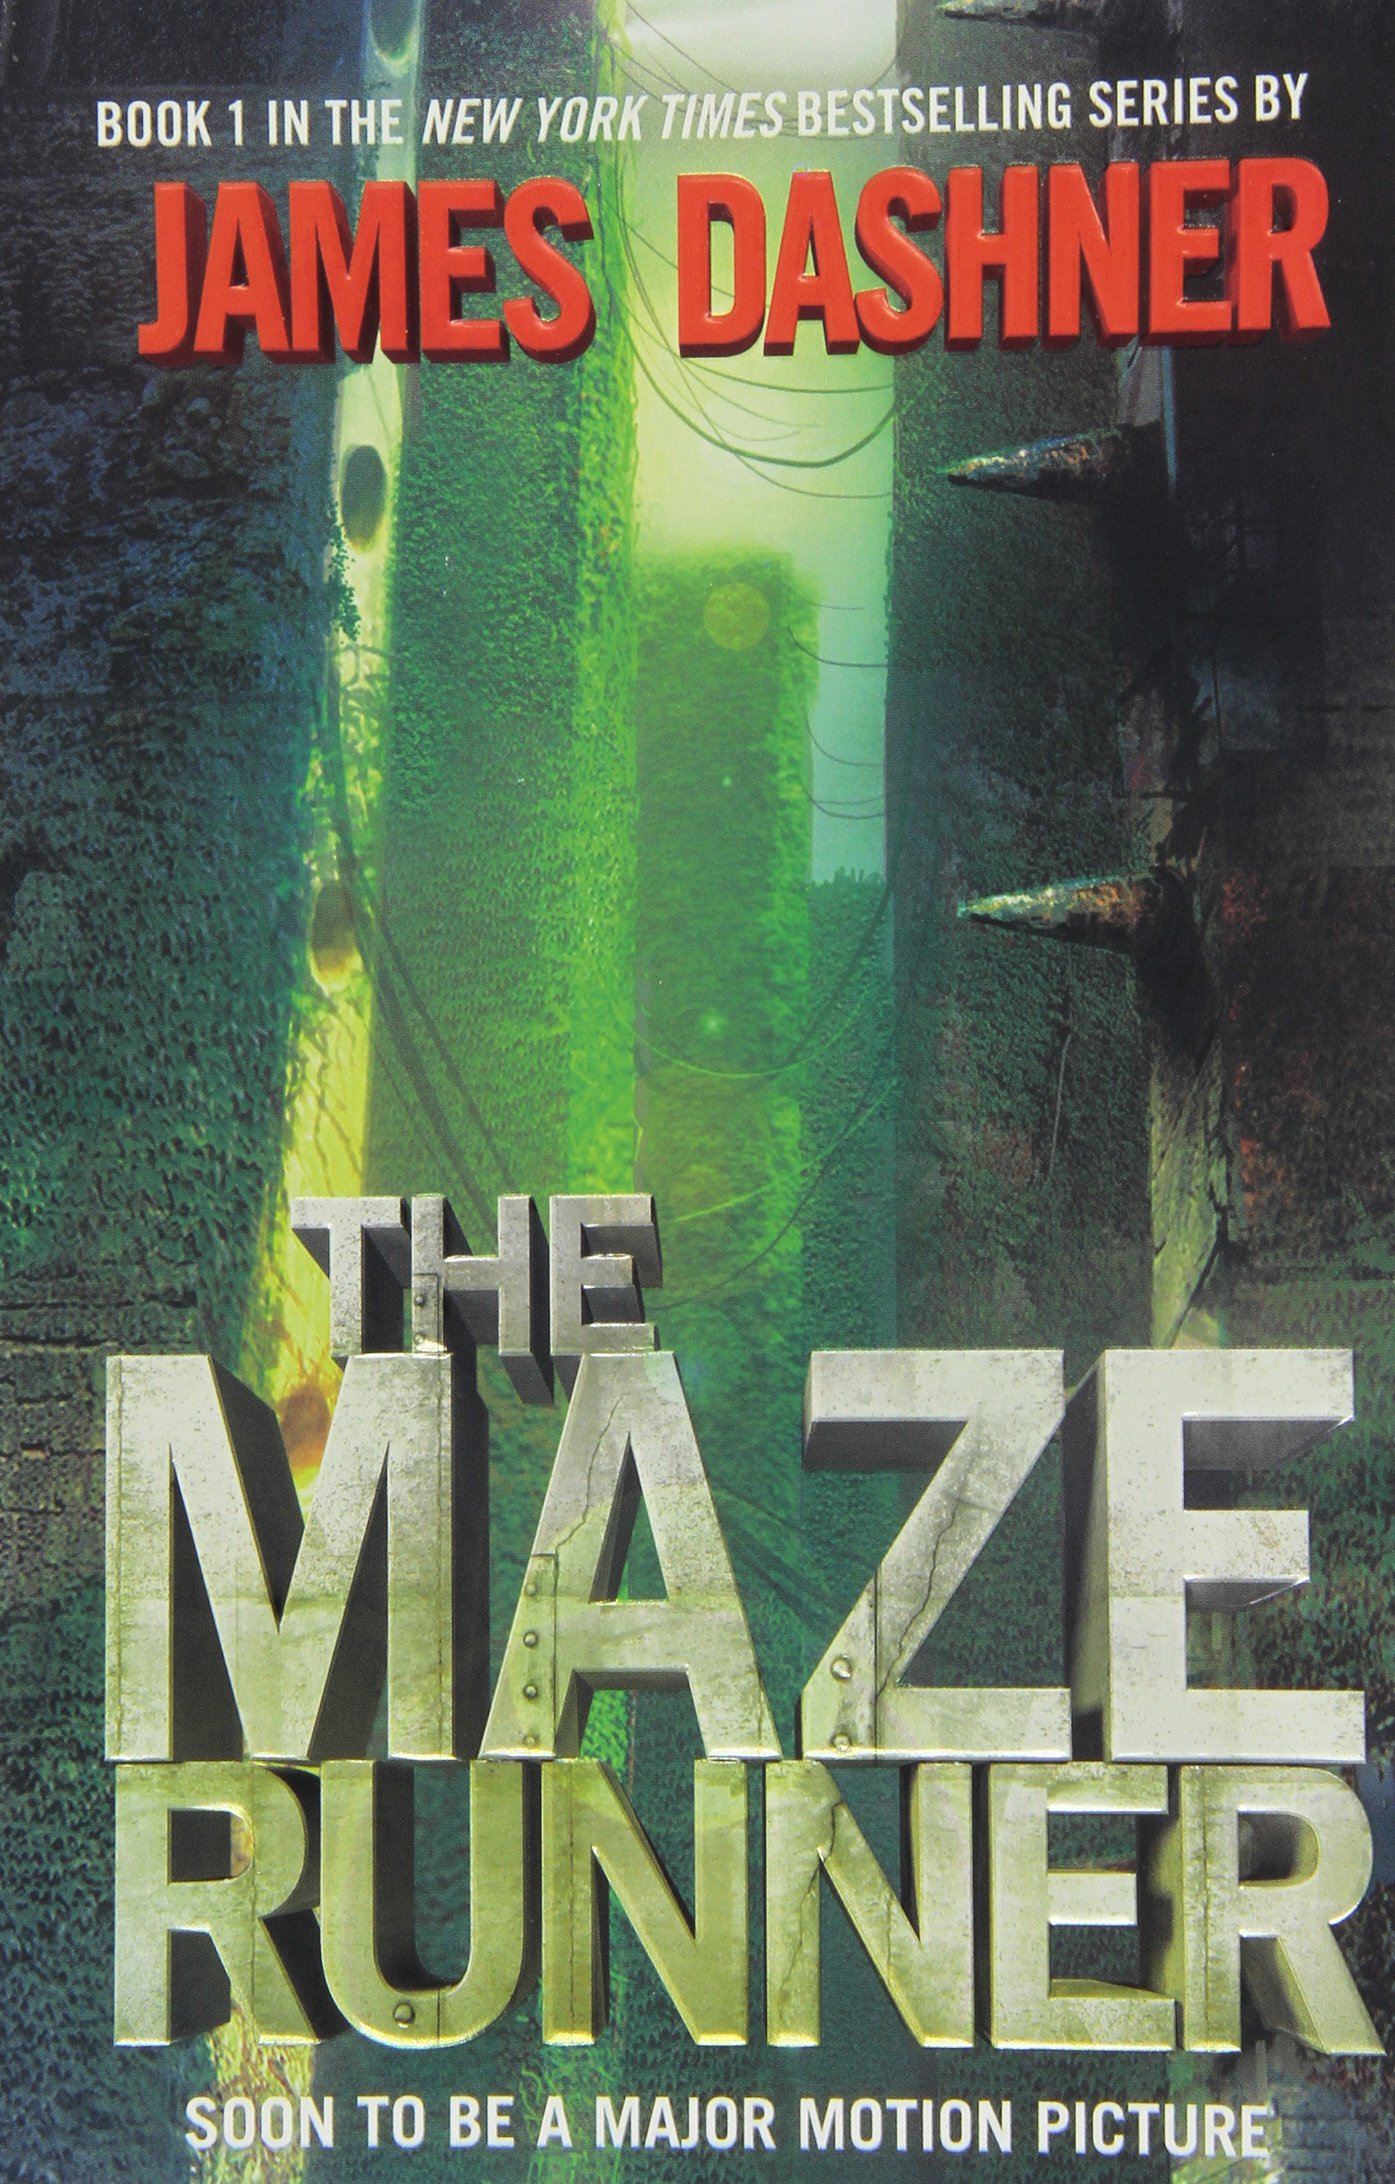 James Dashner's Journey From Accountant To Wildly Successful Author | MTPR